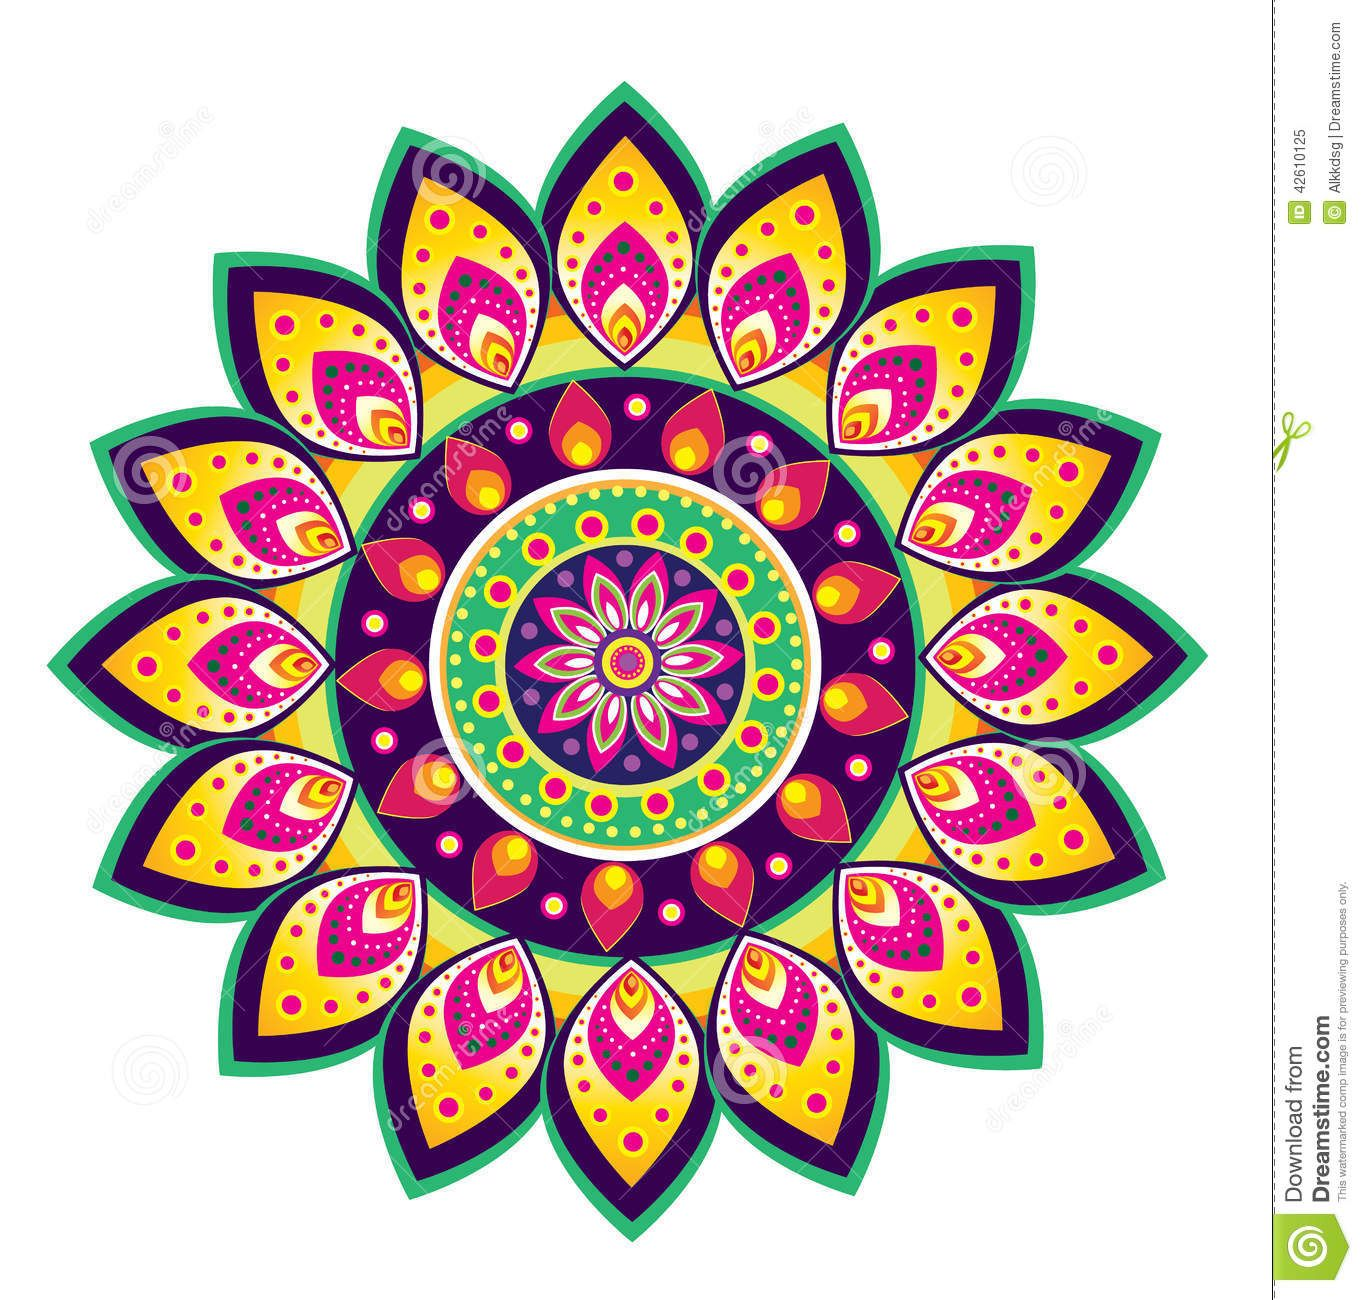 colourful mandala google search mandala pinterest